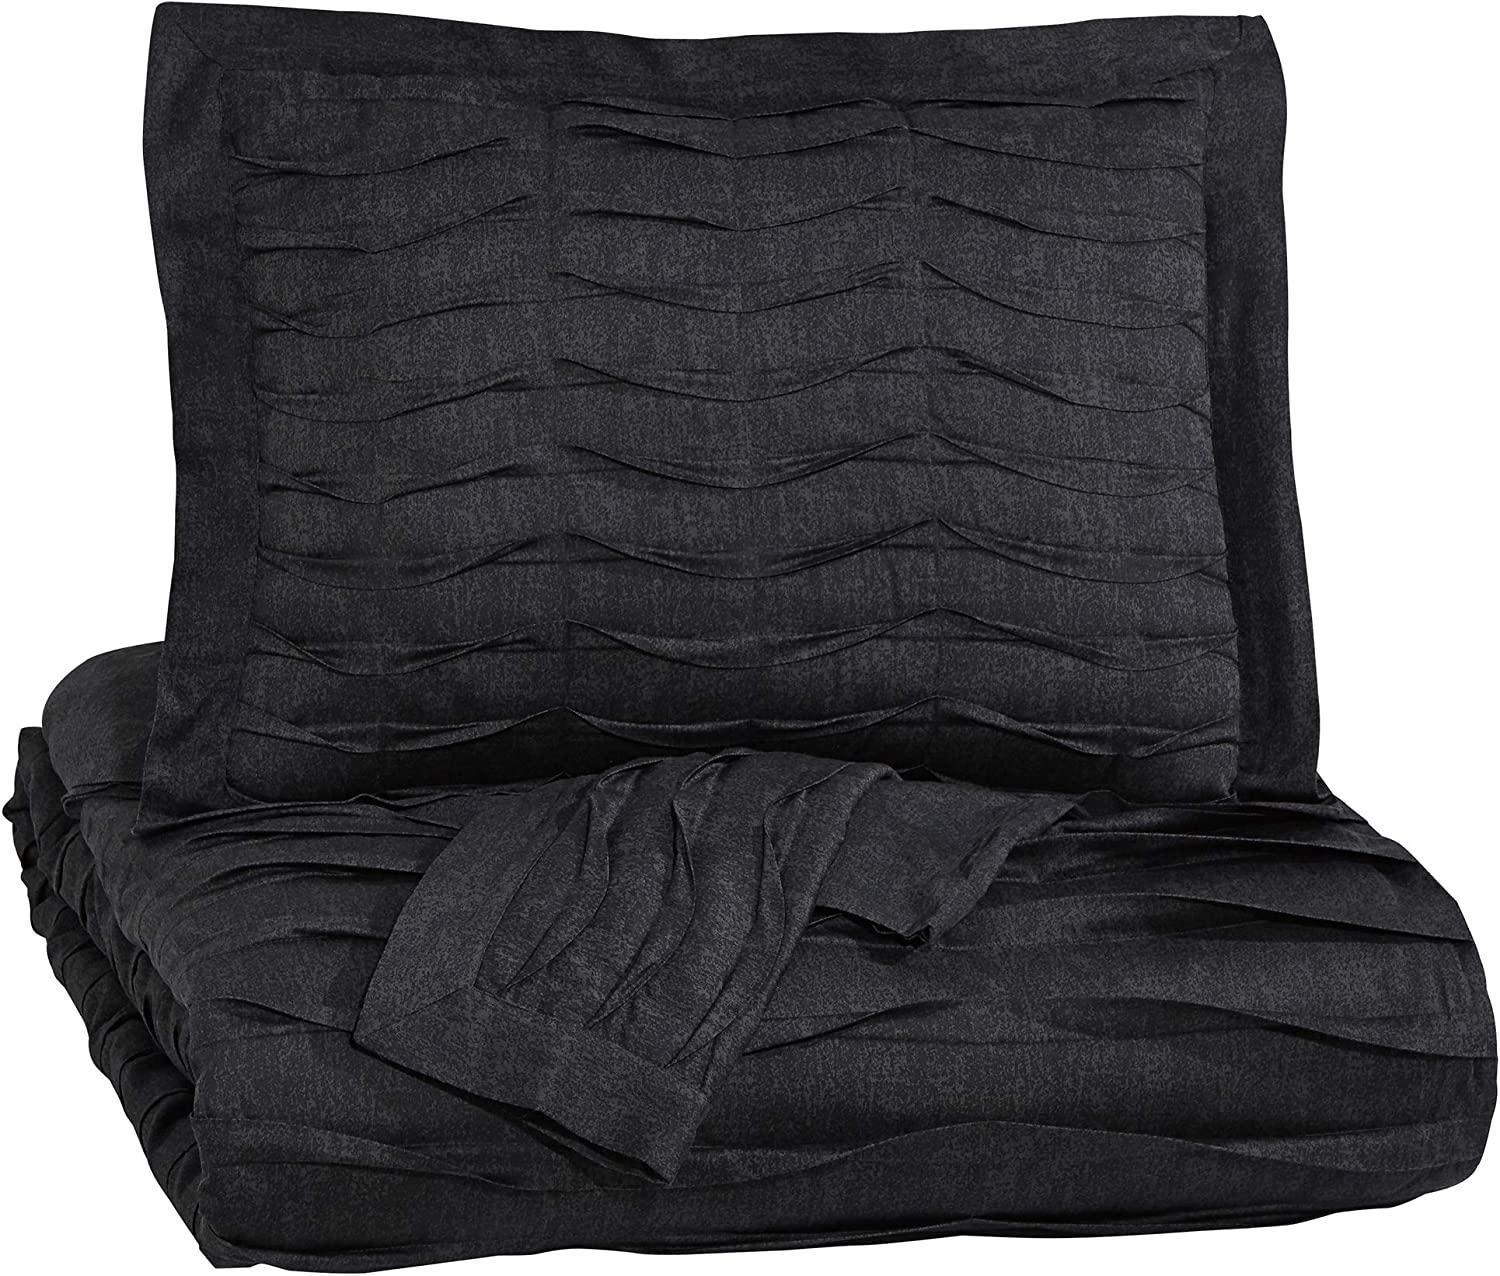 Ashley Furniture Signature Design - Voltos Comforter Set - Includes Duvet Cover & 2 Shams - King Size - Charcoal